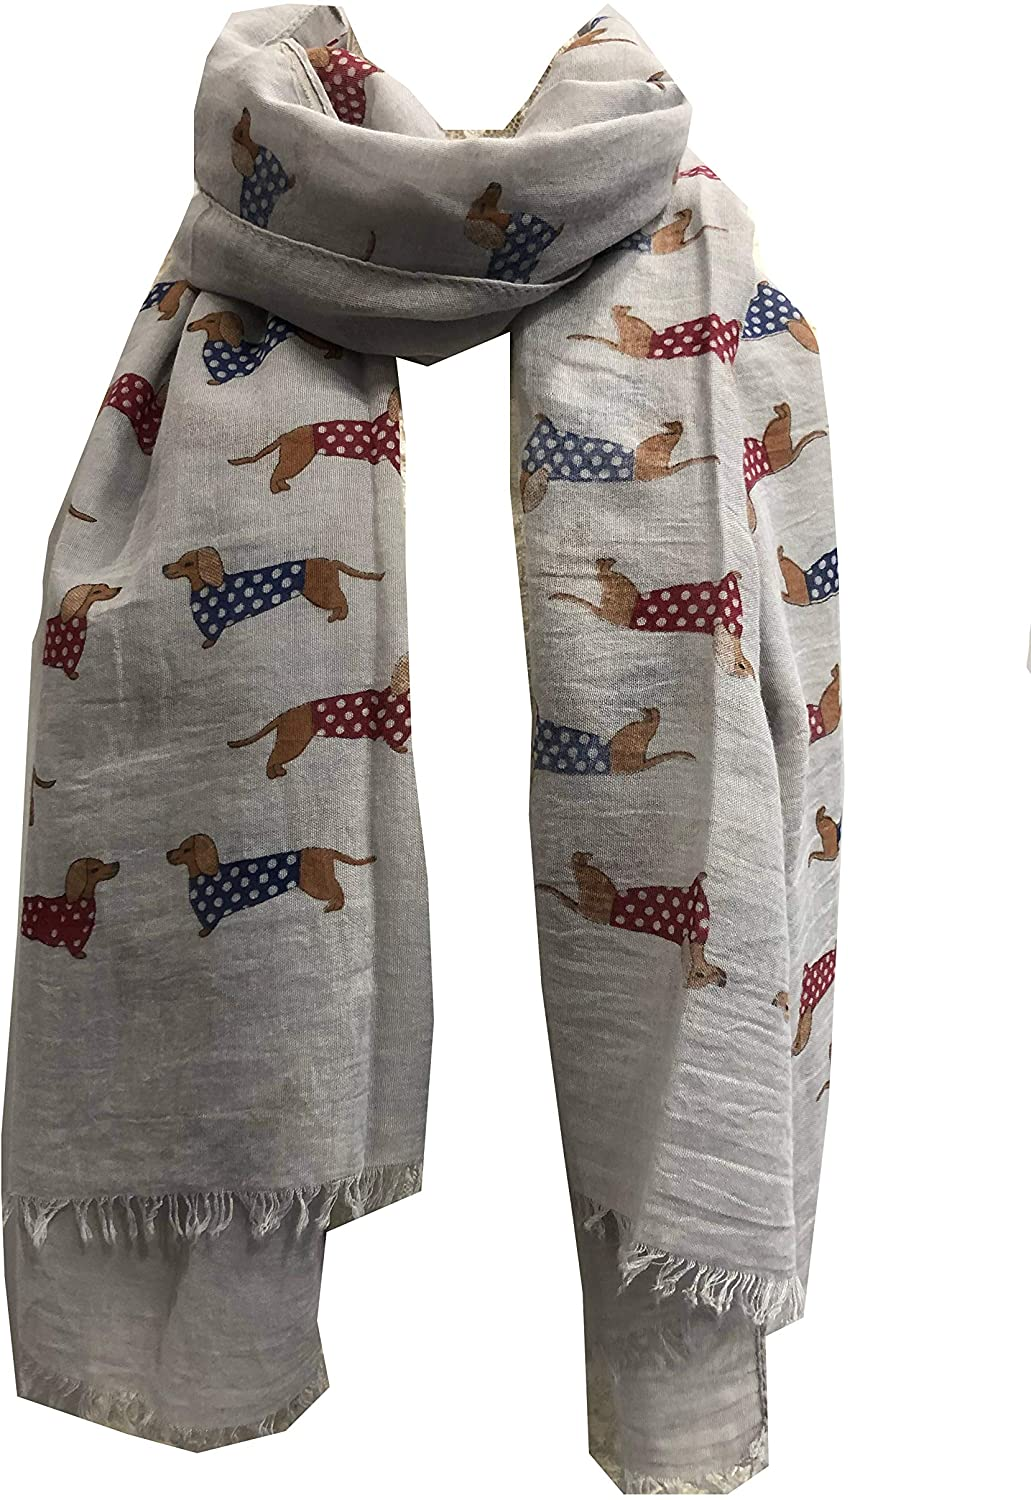 Pamper Yourself Now Grey Sausage Dog with Spotty Coat Long Scarf with Frayed Edge